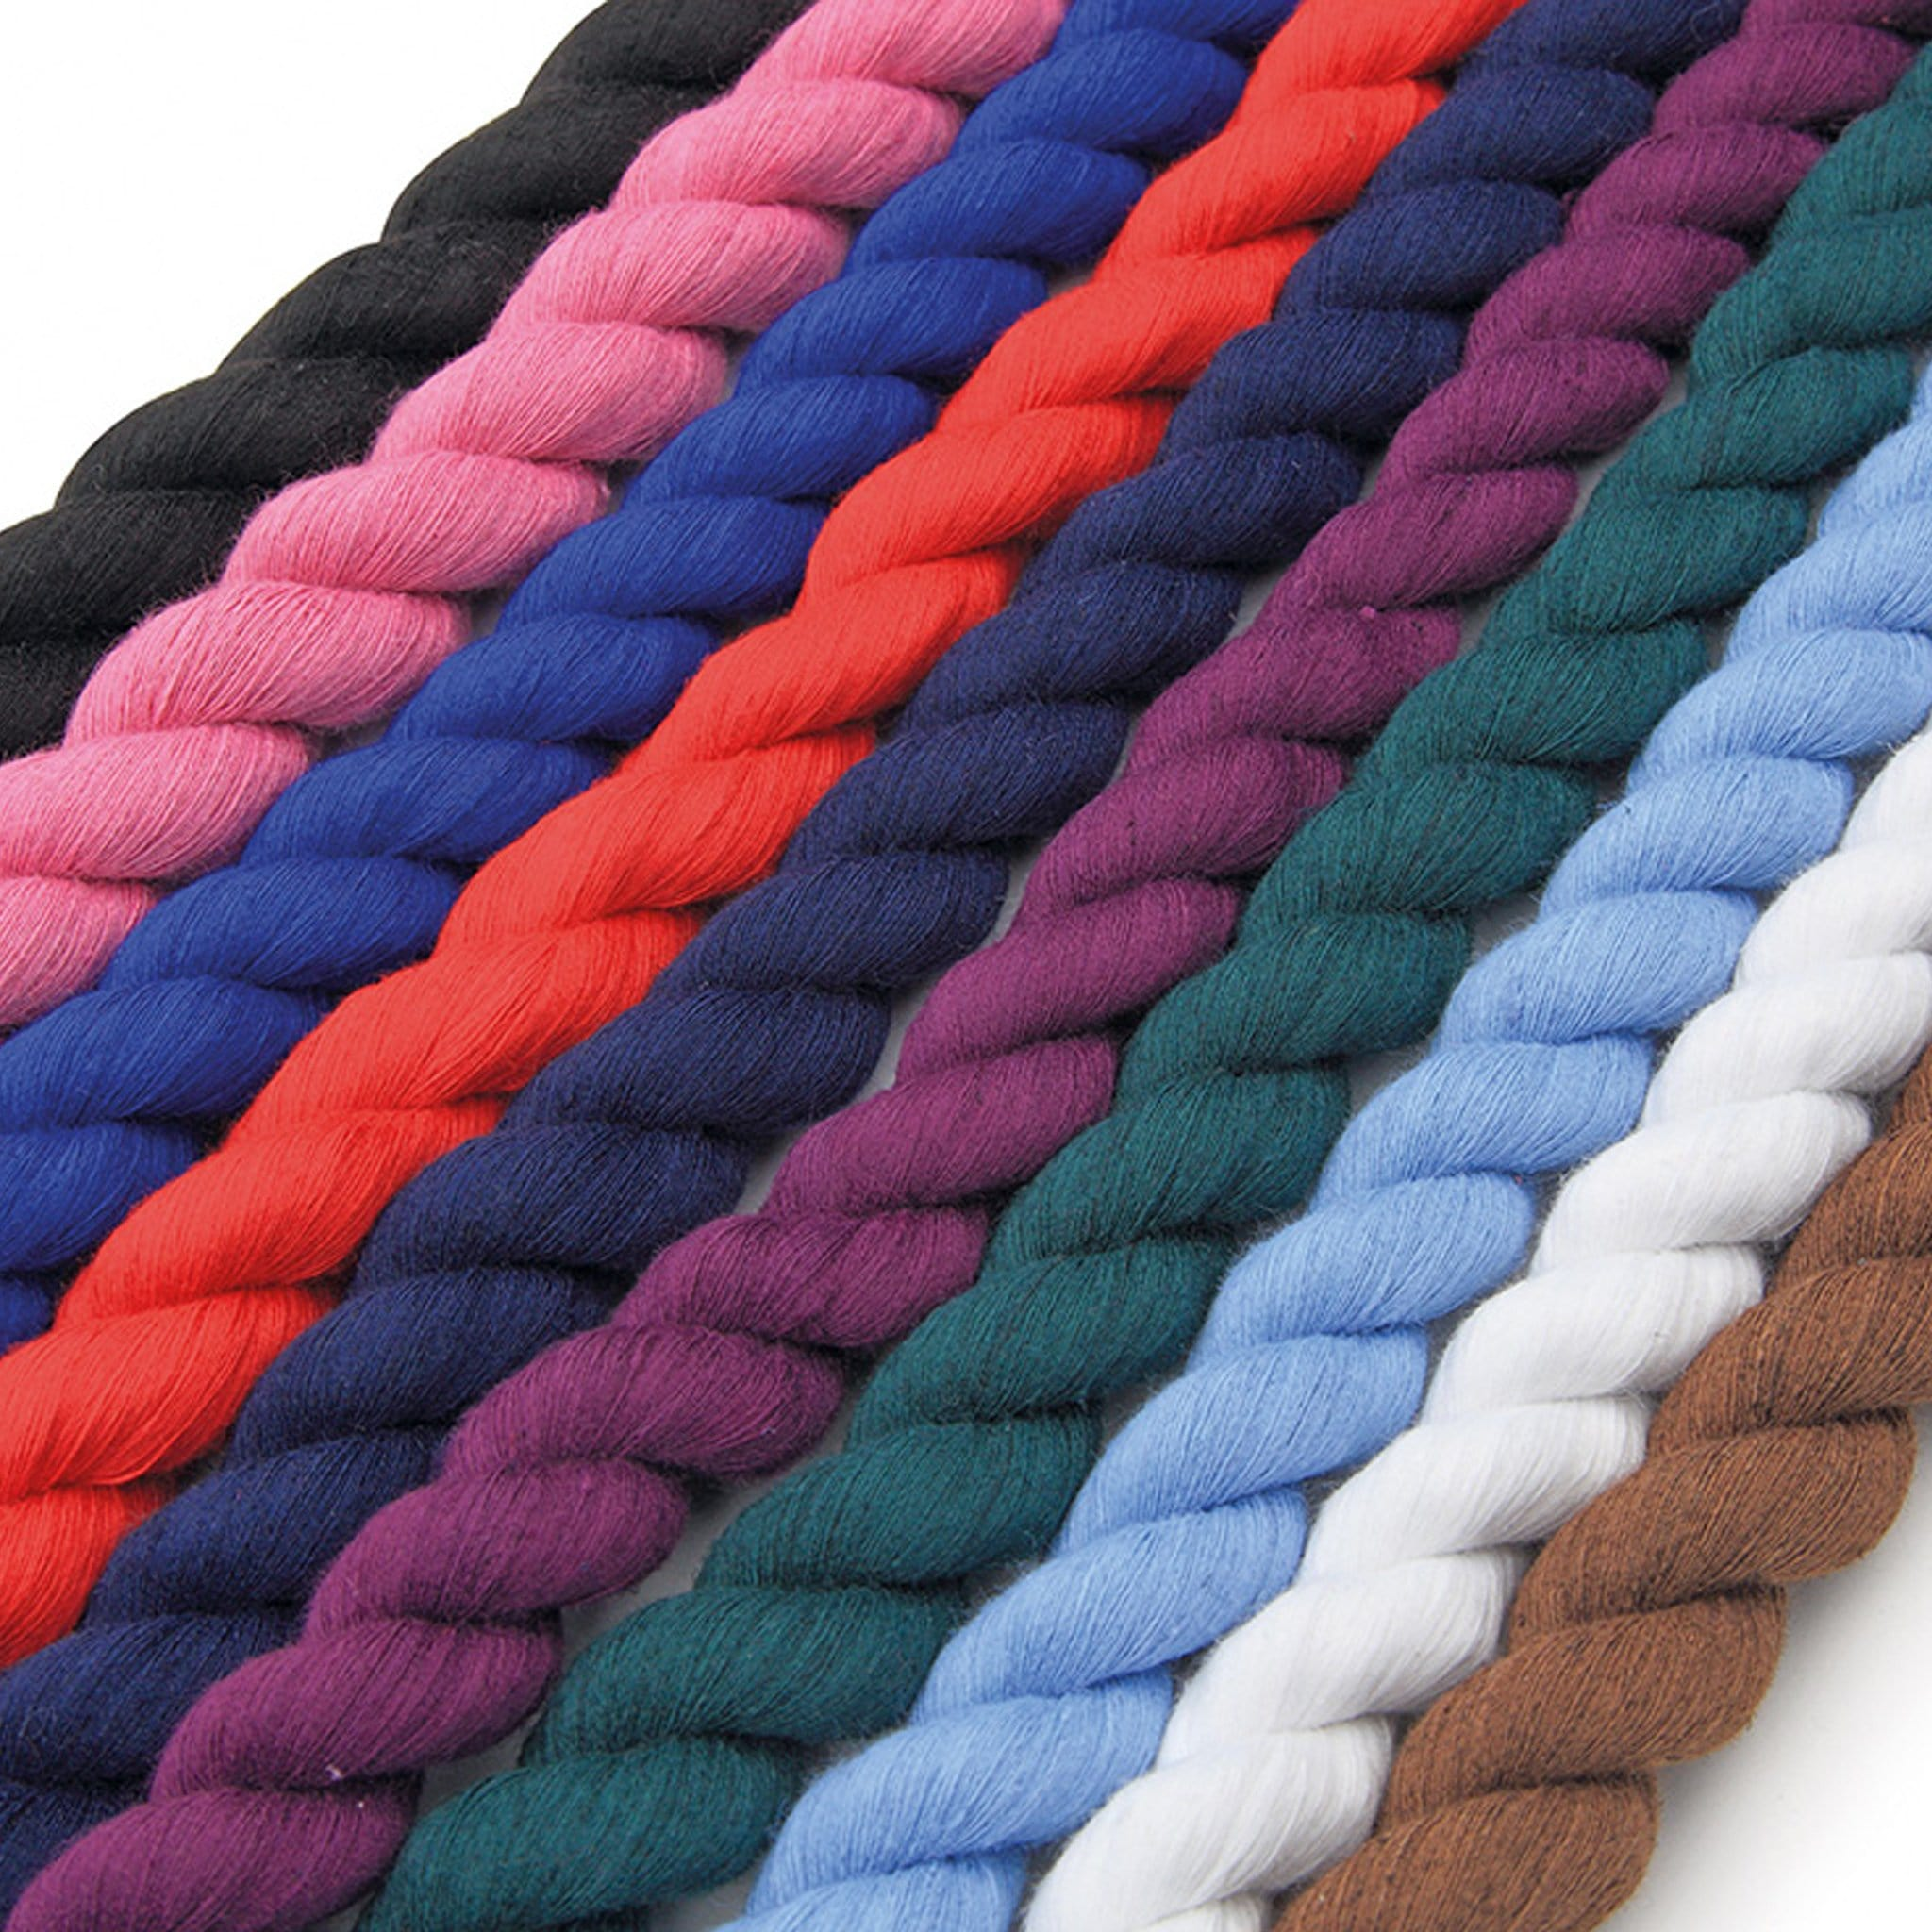 Shires Plain Lead Rope All Colours 389A.